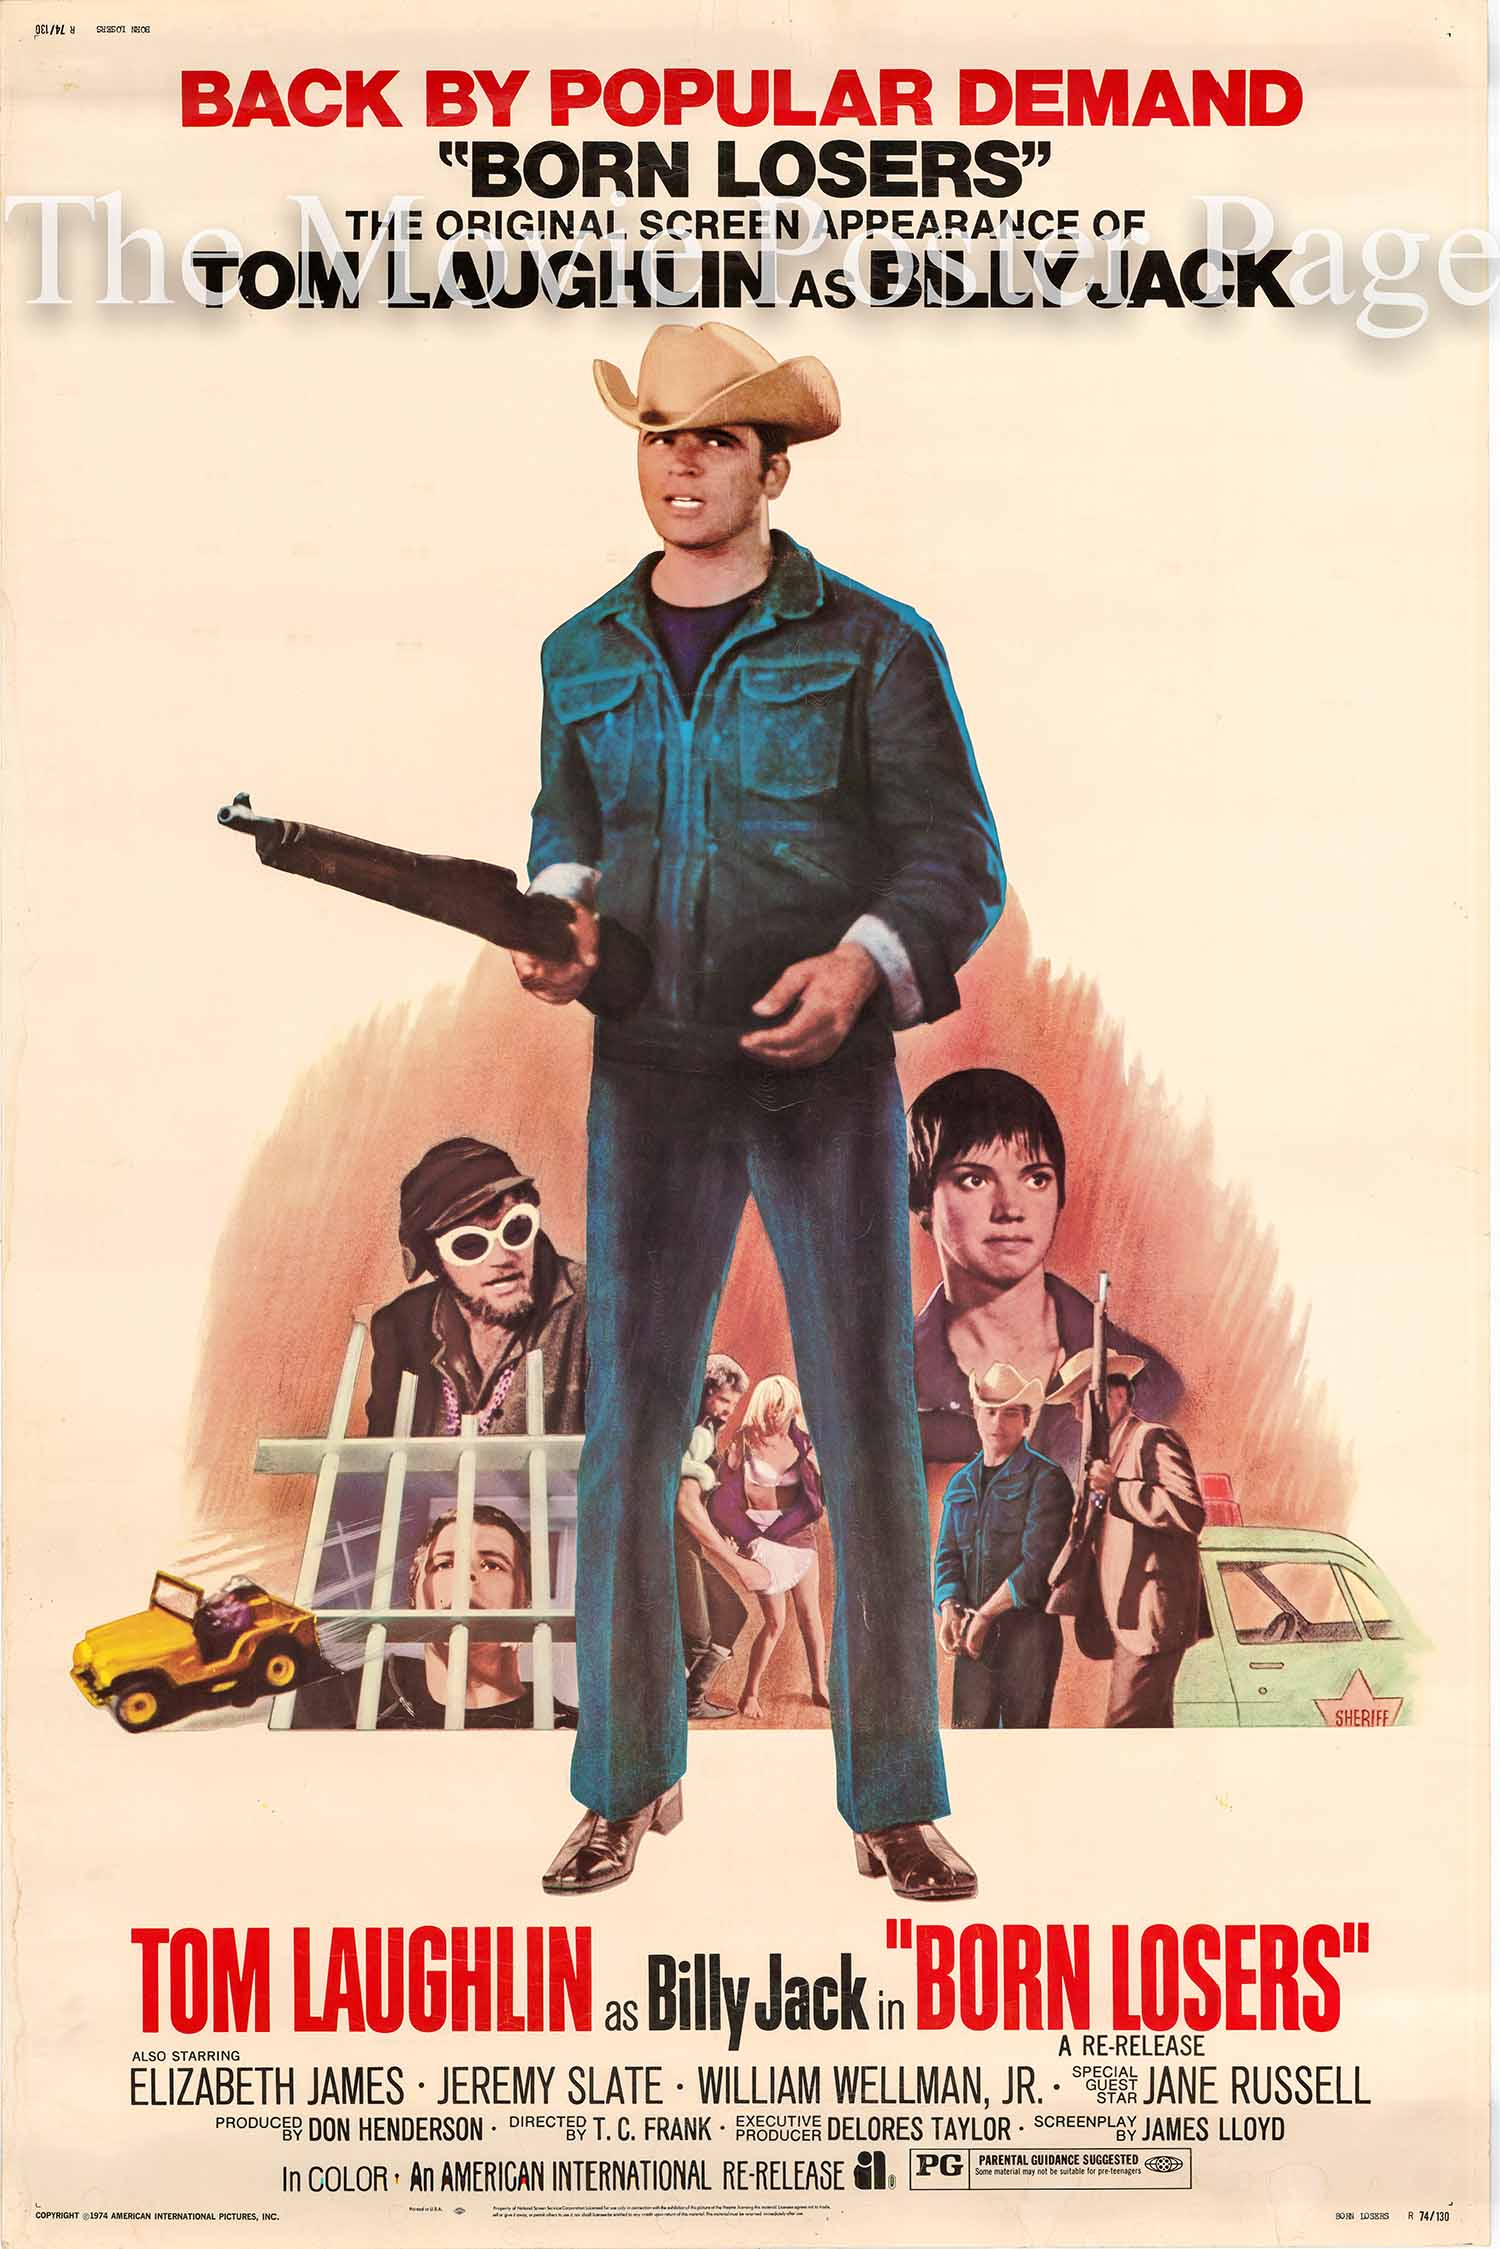 Pictured is a US 40x60 promotional poster for a 1974 rerelease of the 1967 Tom Laughlin film the Born Losers starring Tom Laughlin as Billy Jack.